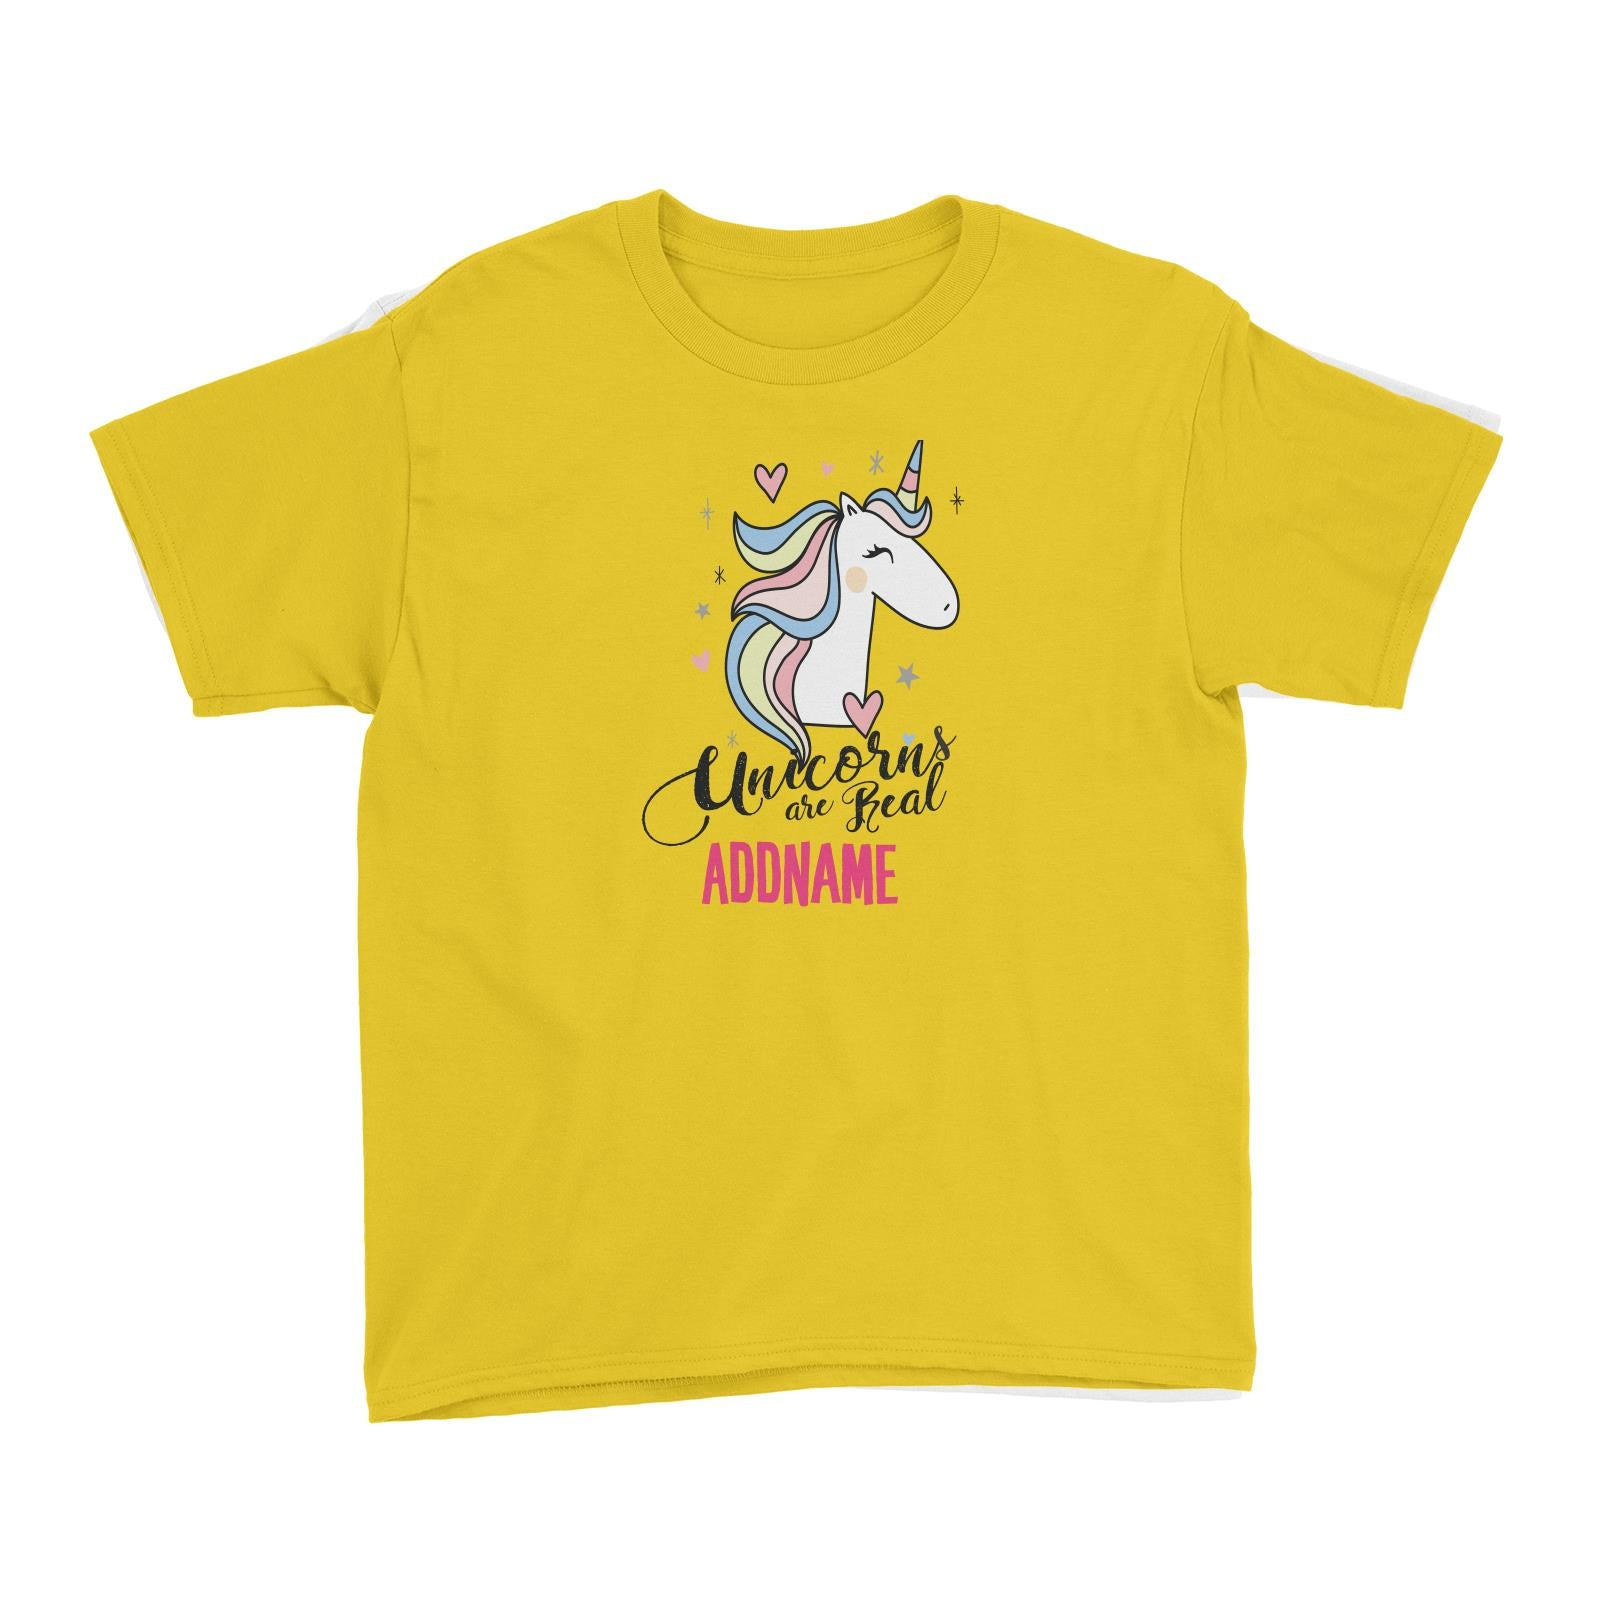 Cool Vibrant Series Unicorns Are Real Addname Kid's T-Shirt